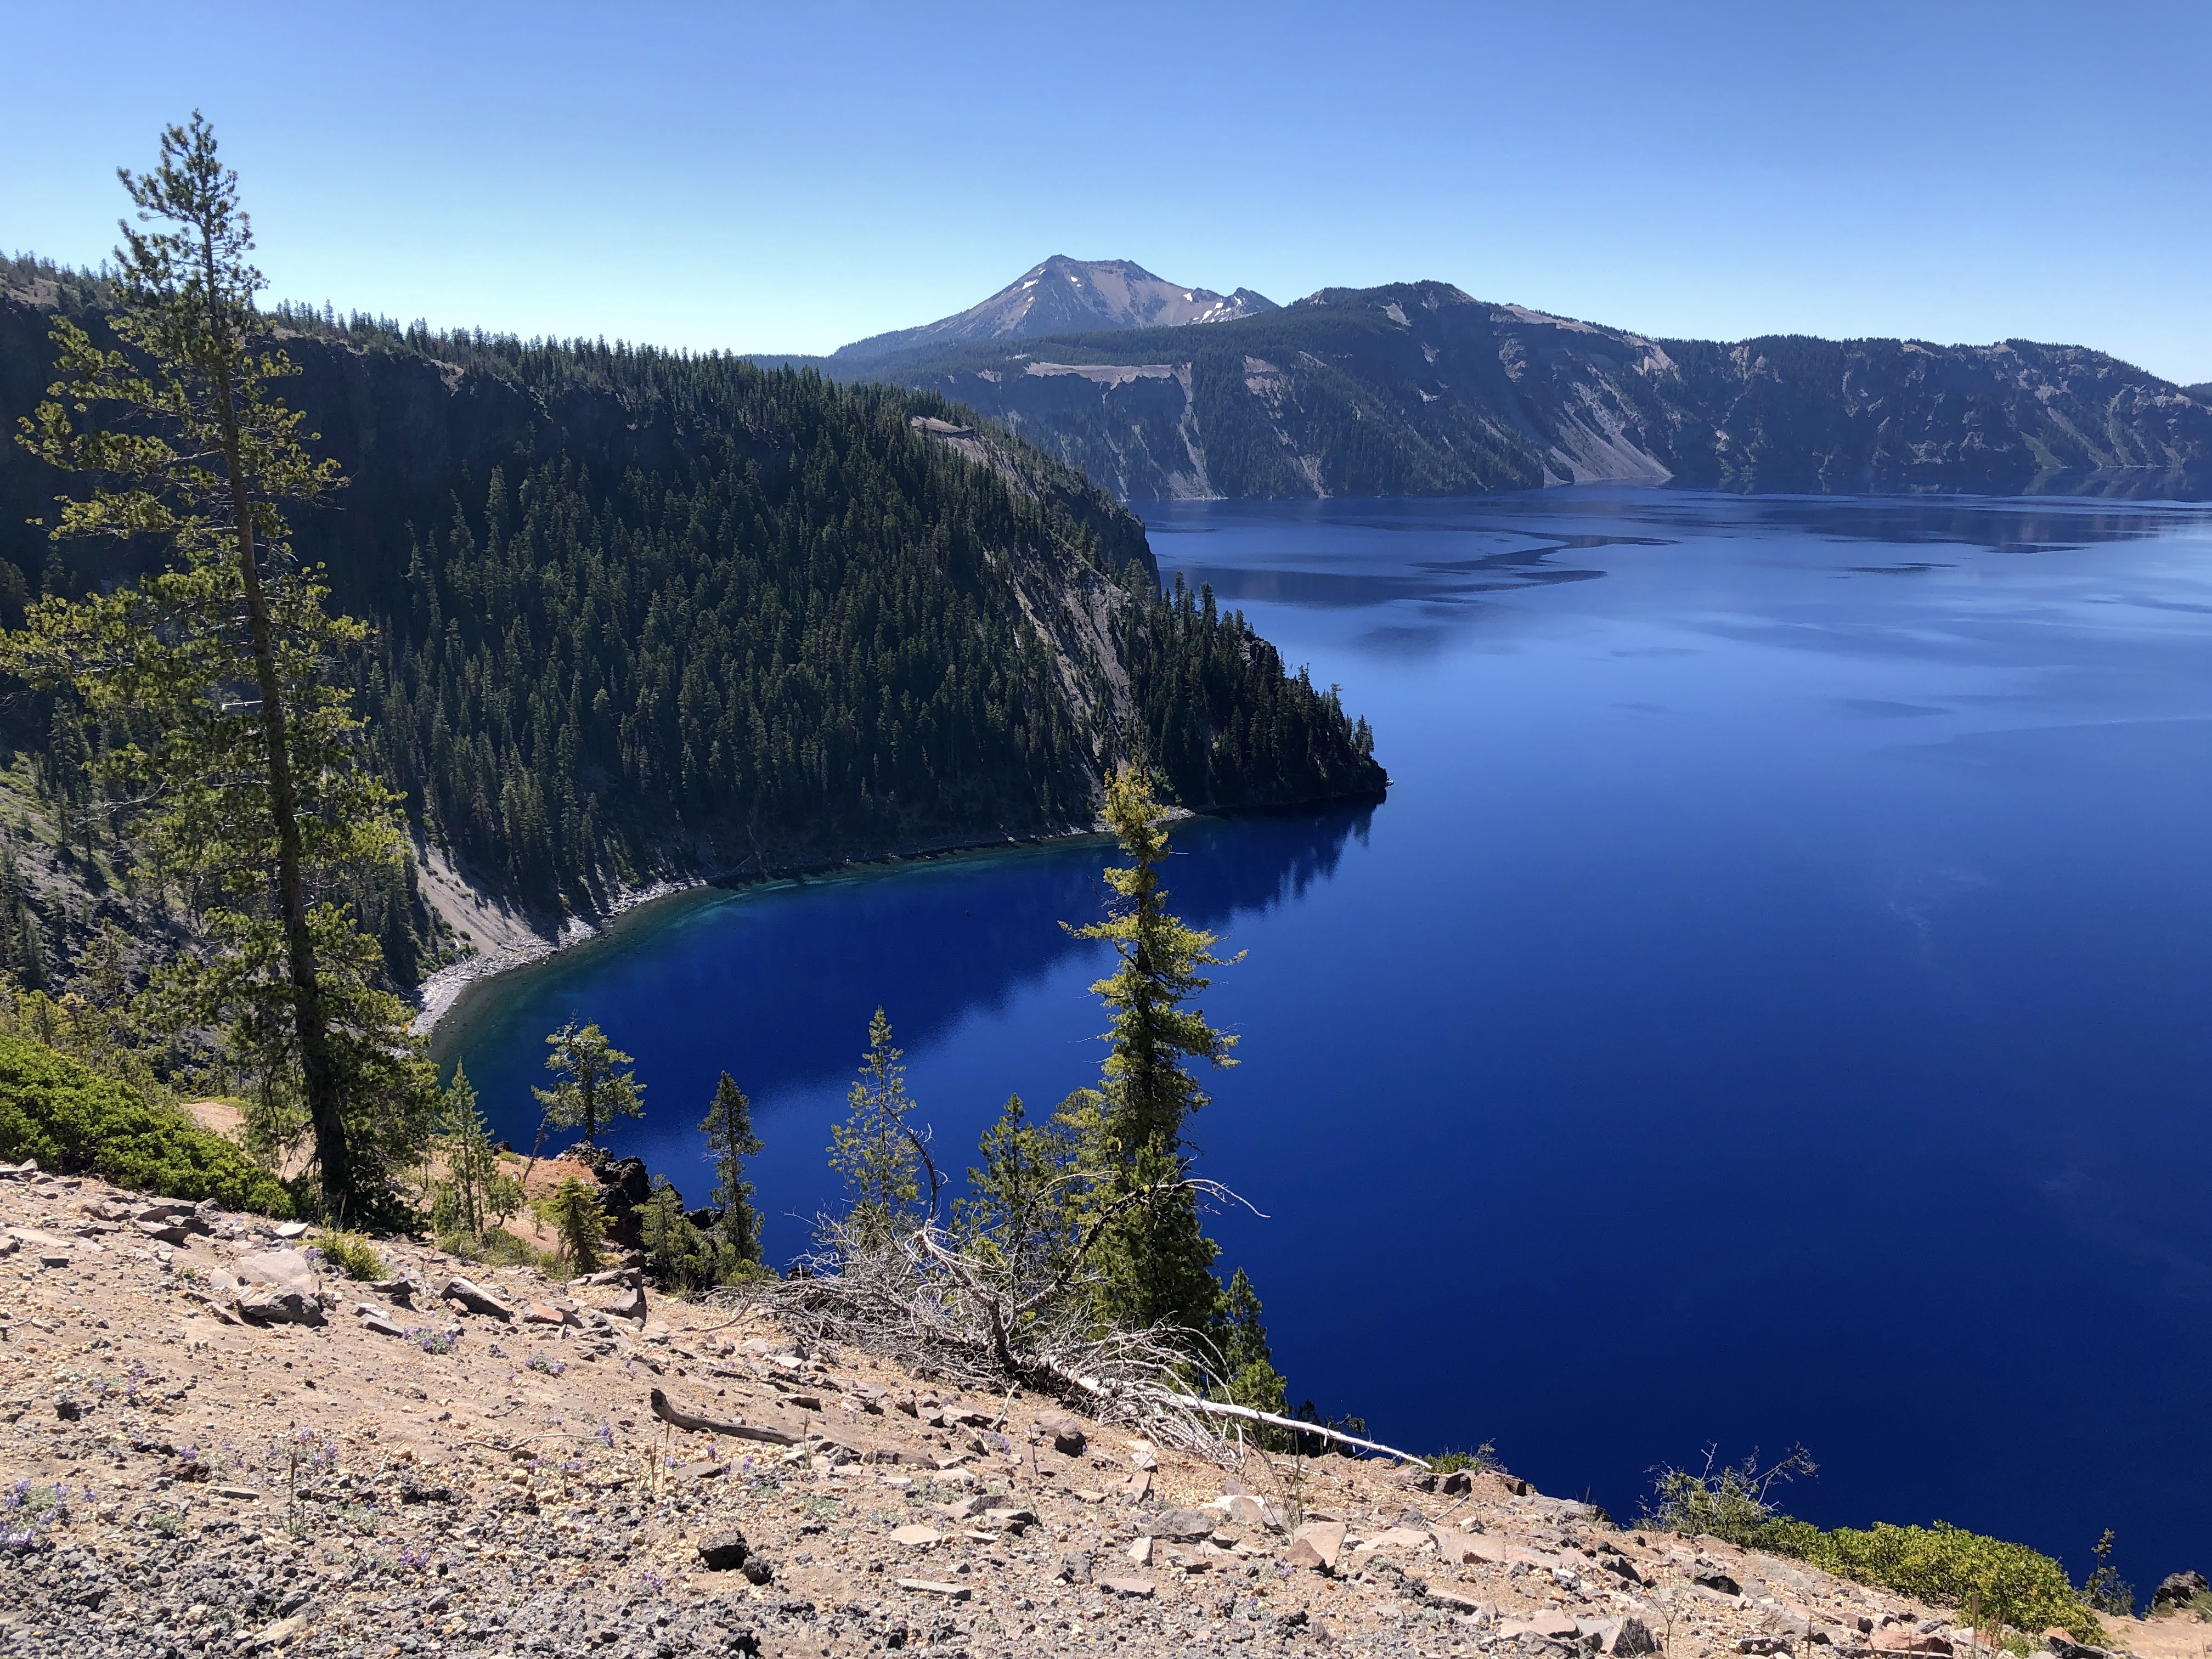 crater lake from the north rim on a clear day